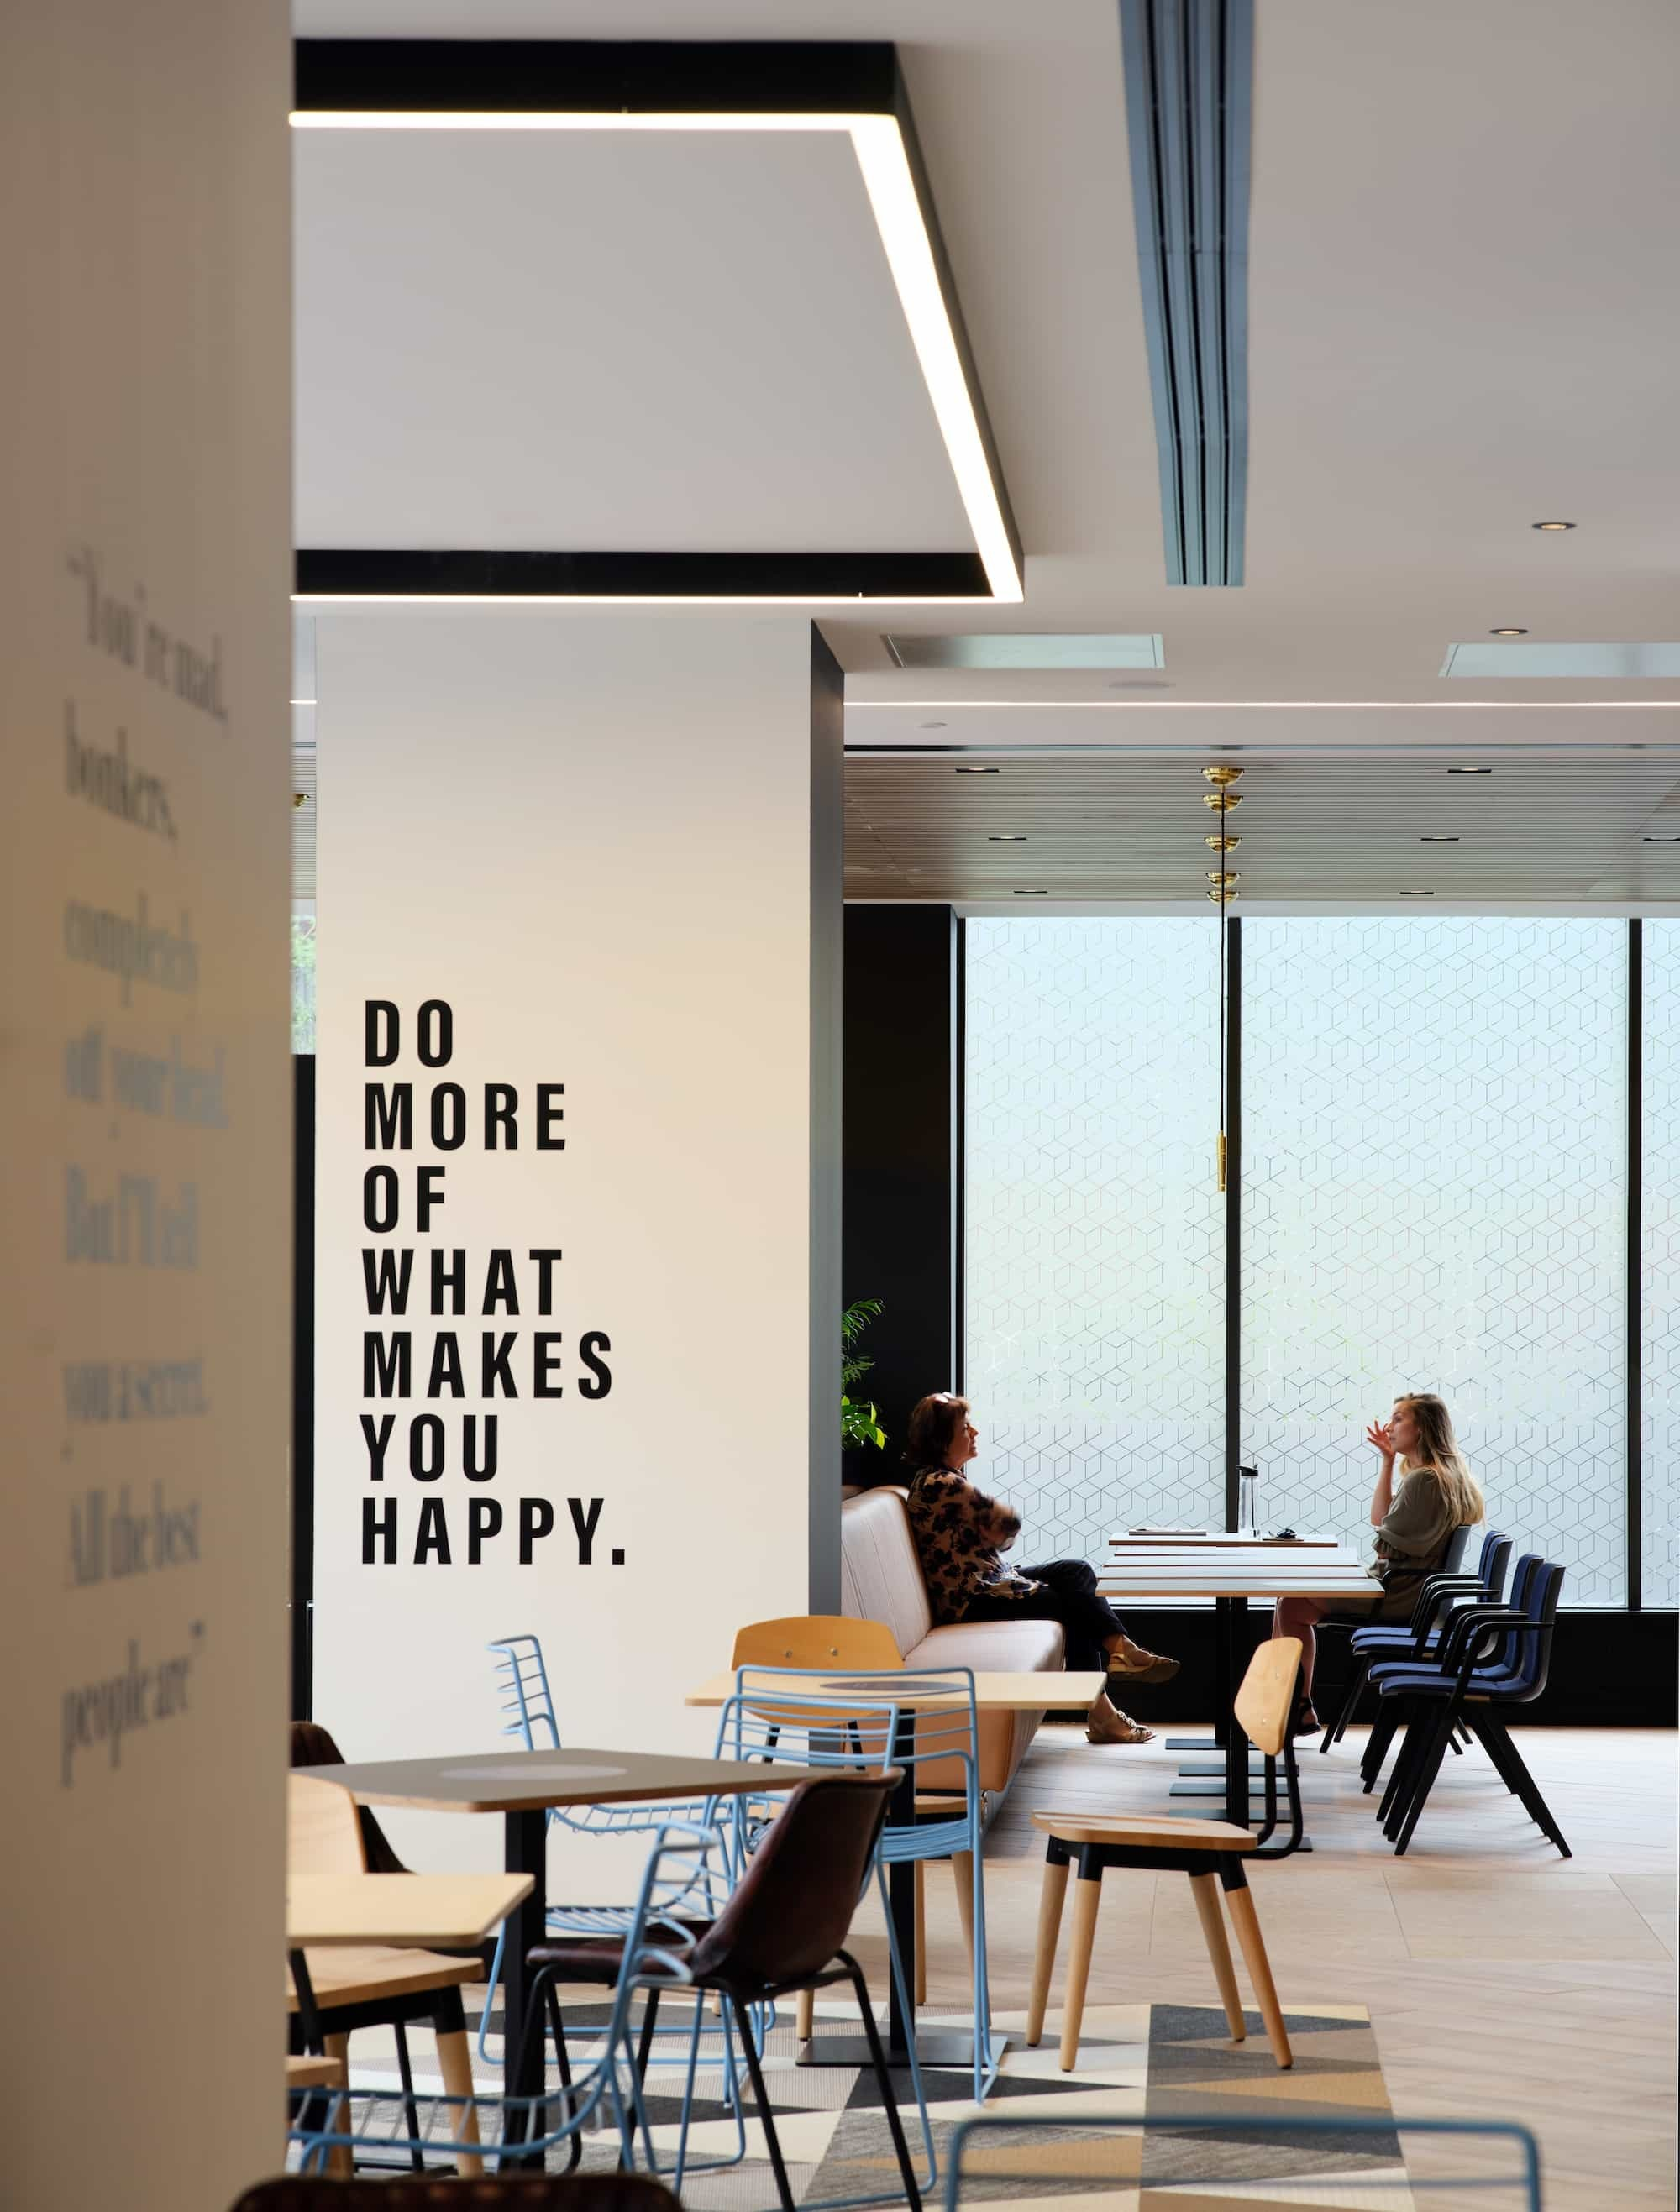 Workers in modern office fit out